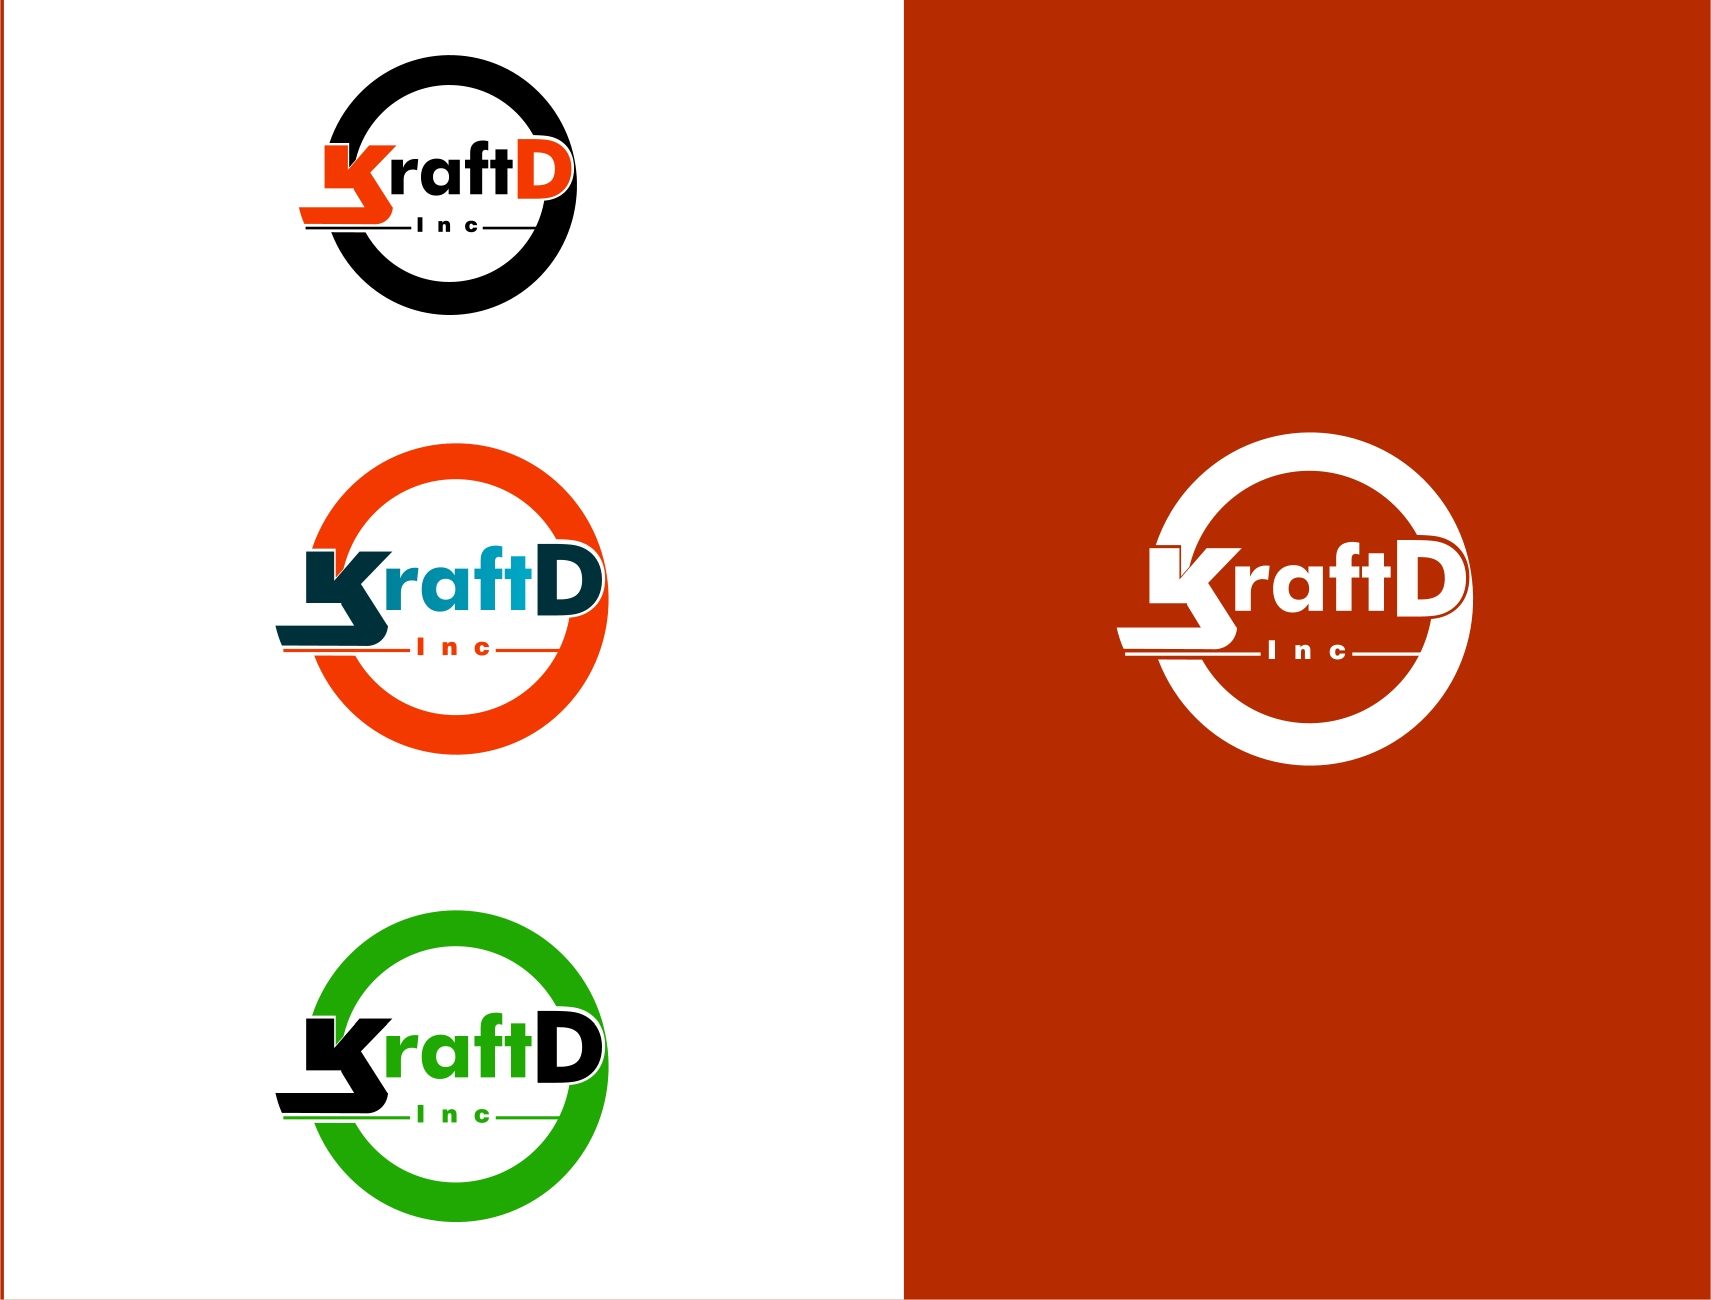 Logo Design by Private User - Entry No. 170 in the Logo Design Contest Unique Logo Design Wanted for Kraft D Inc.